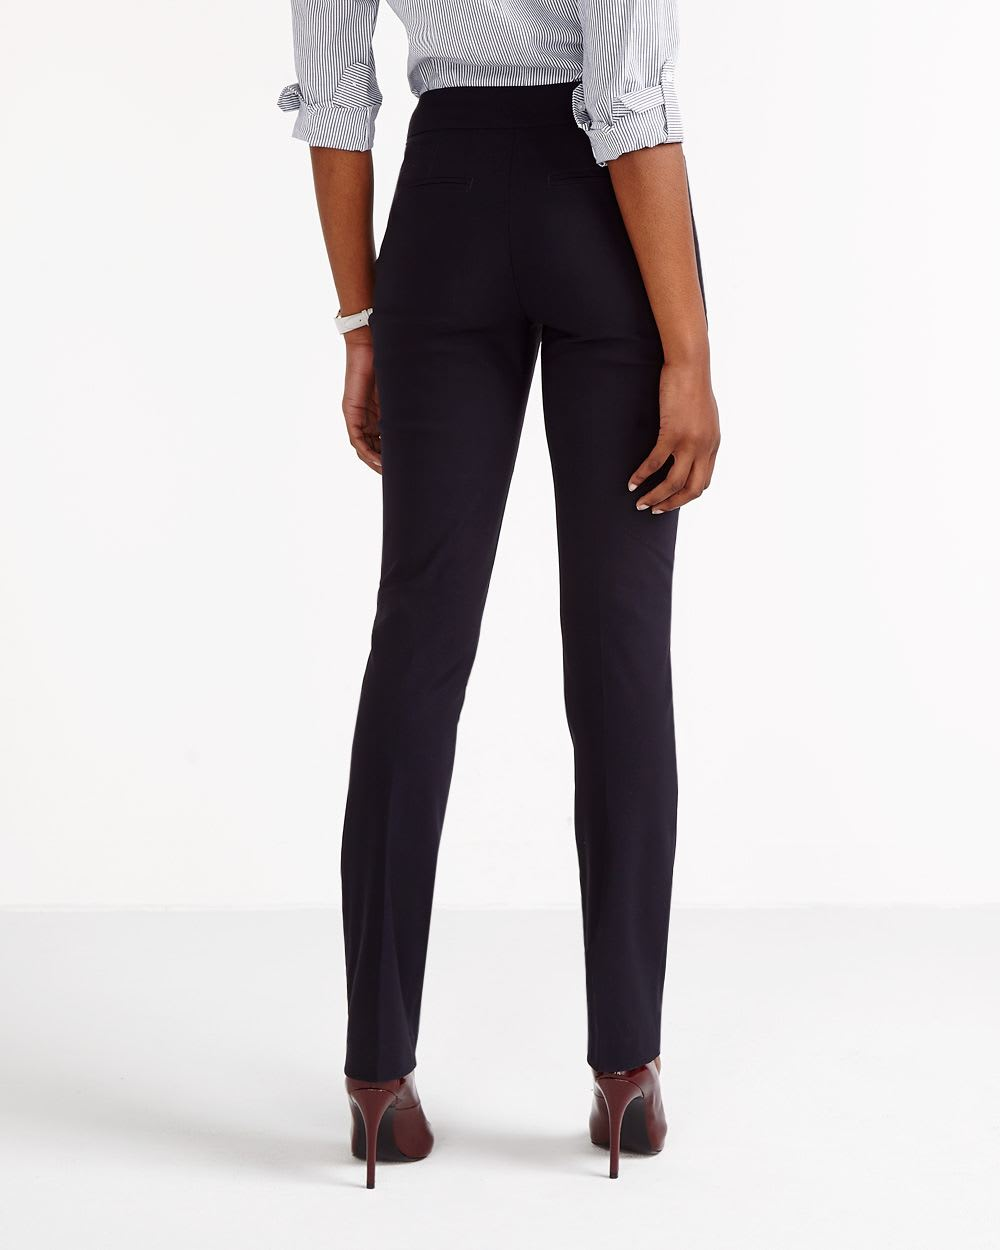 The Tall Iconic Straight Leg Solid Pants